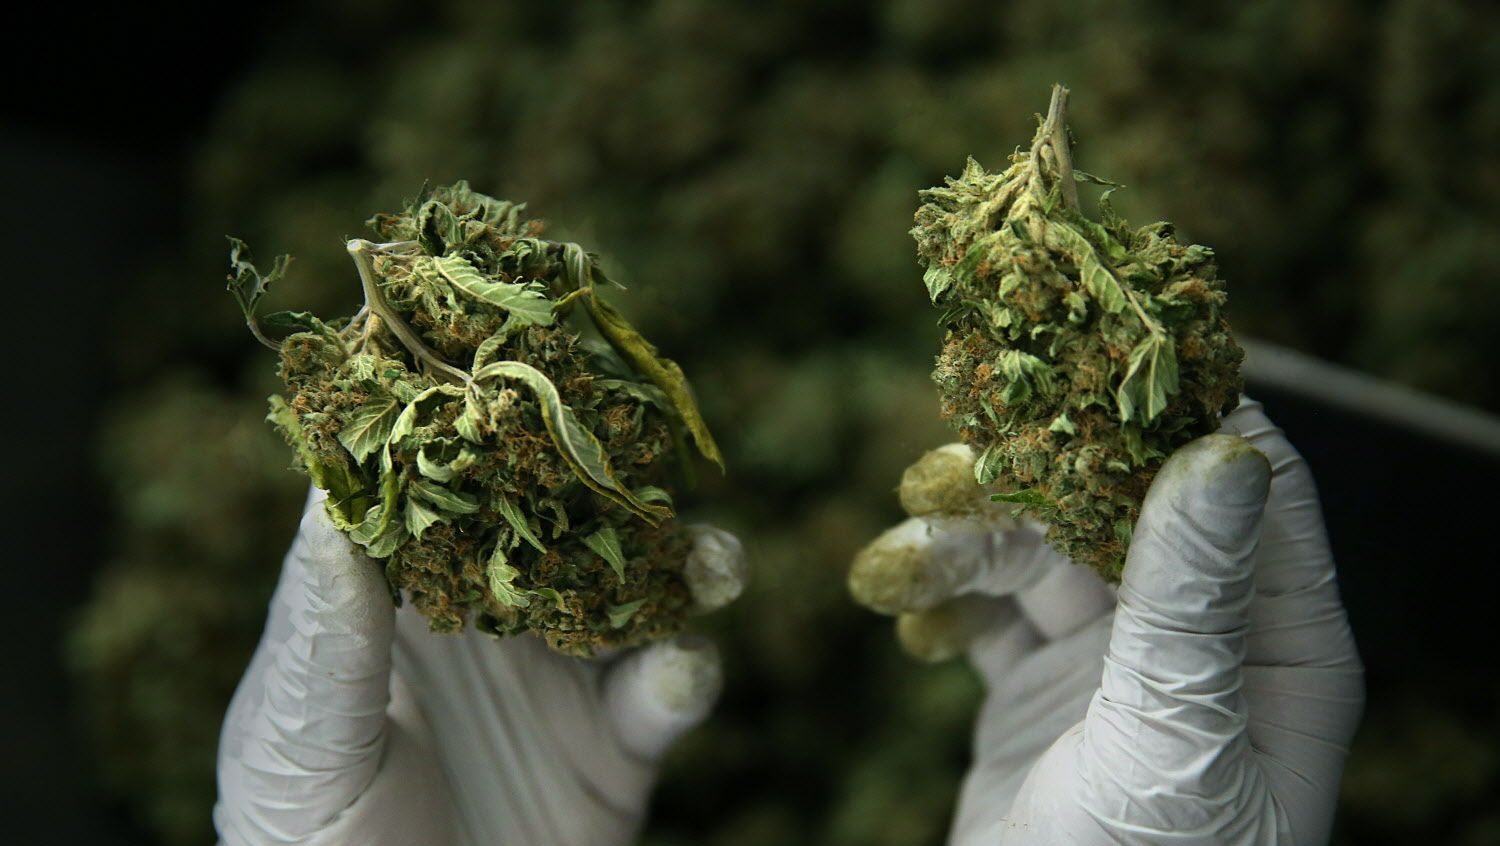 Processor Calvin Lee shows a regular dried bud (left) and one trimmed by a trimming machine (right) as he works a trimming machine at Butterbrand Farms on Friday, August 18, 2017, in San Francisco, Calif. SOURCE: Liz Hafalia